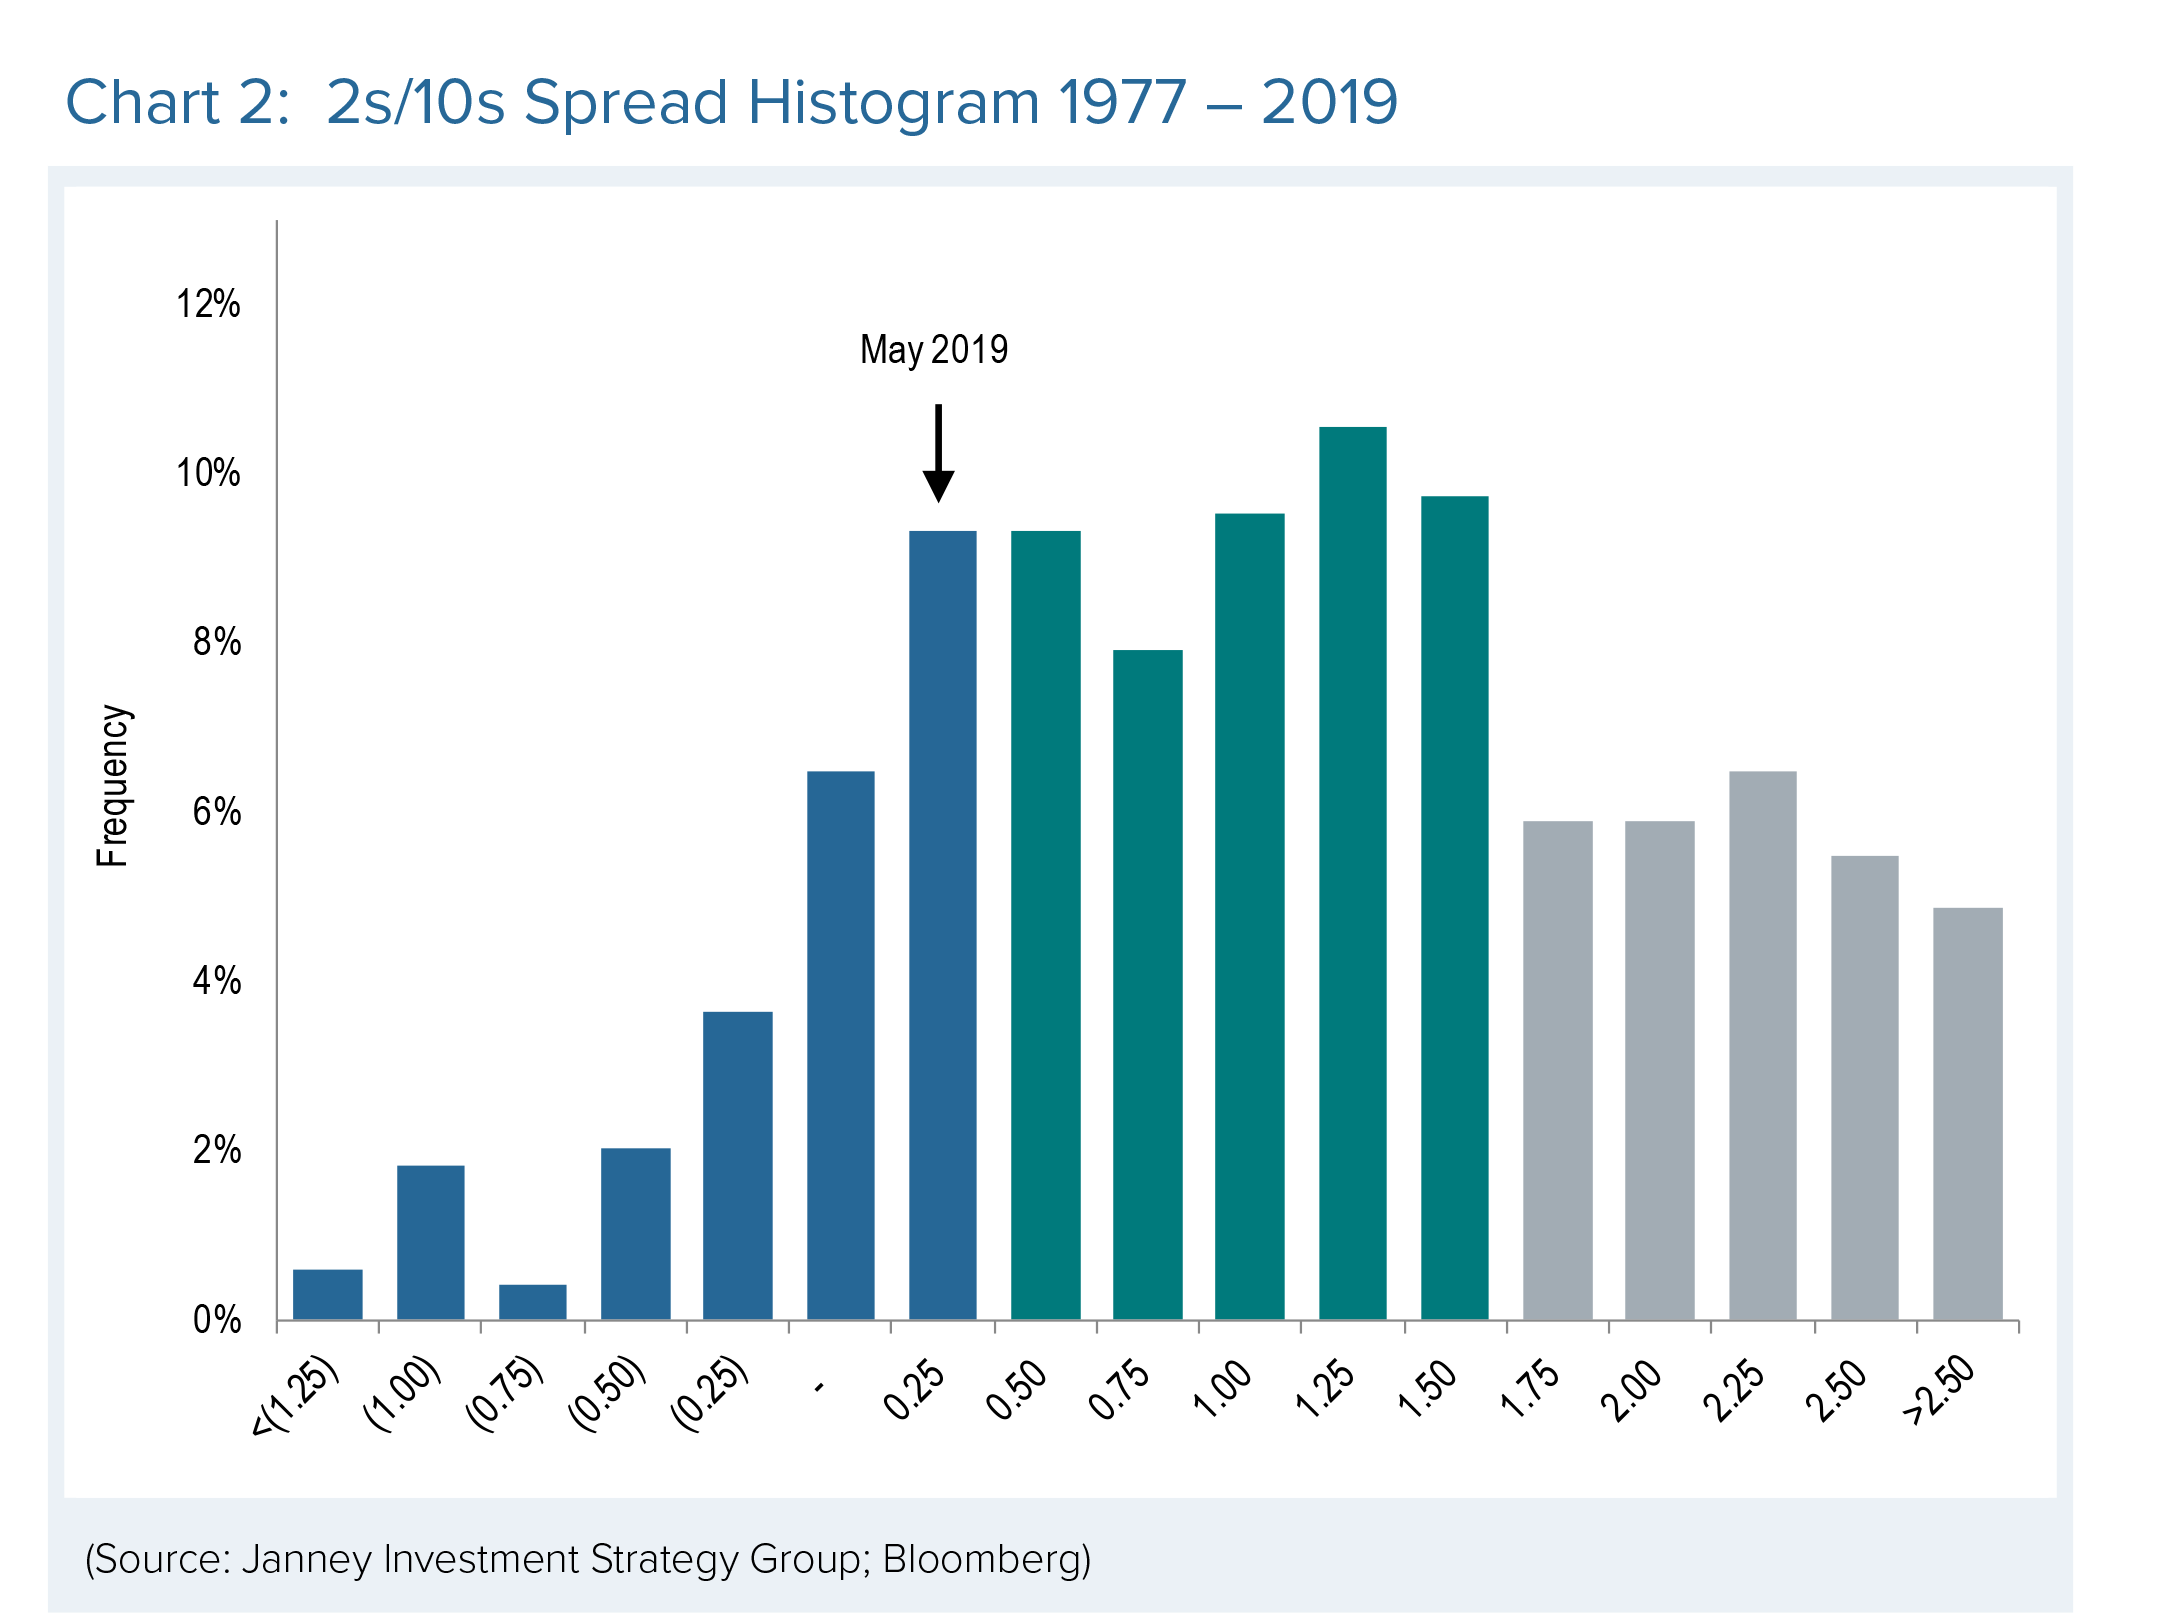 A bar chart shows 2s/10s Spread Histogram, 1977-2019